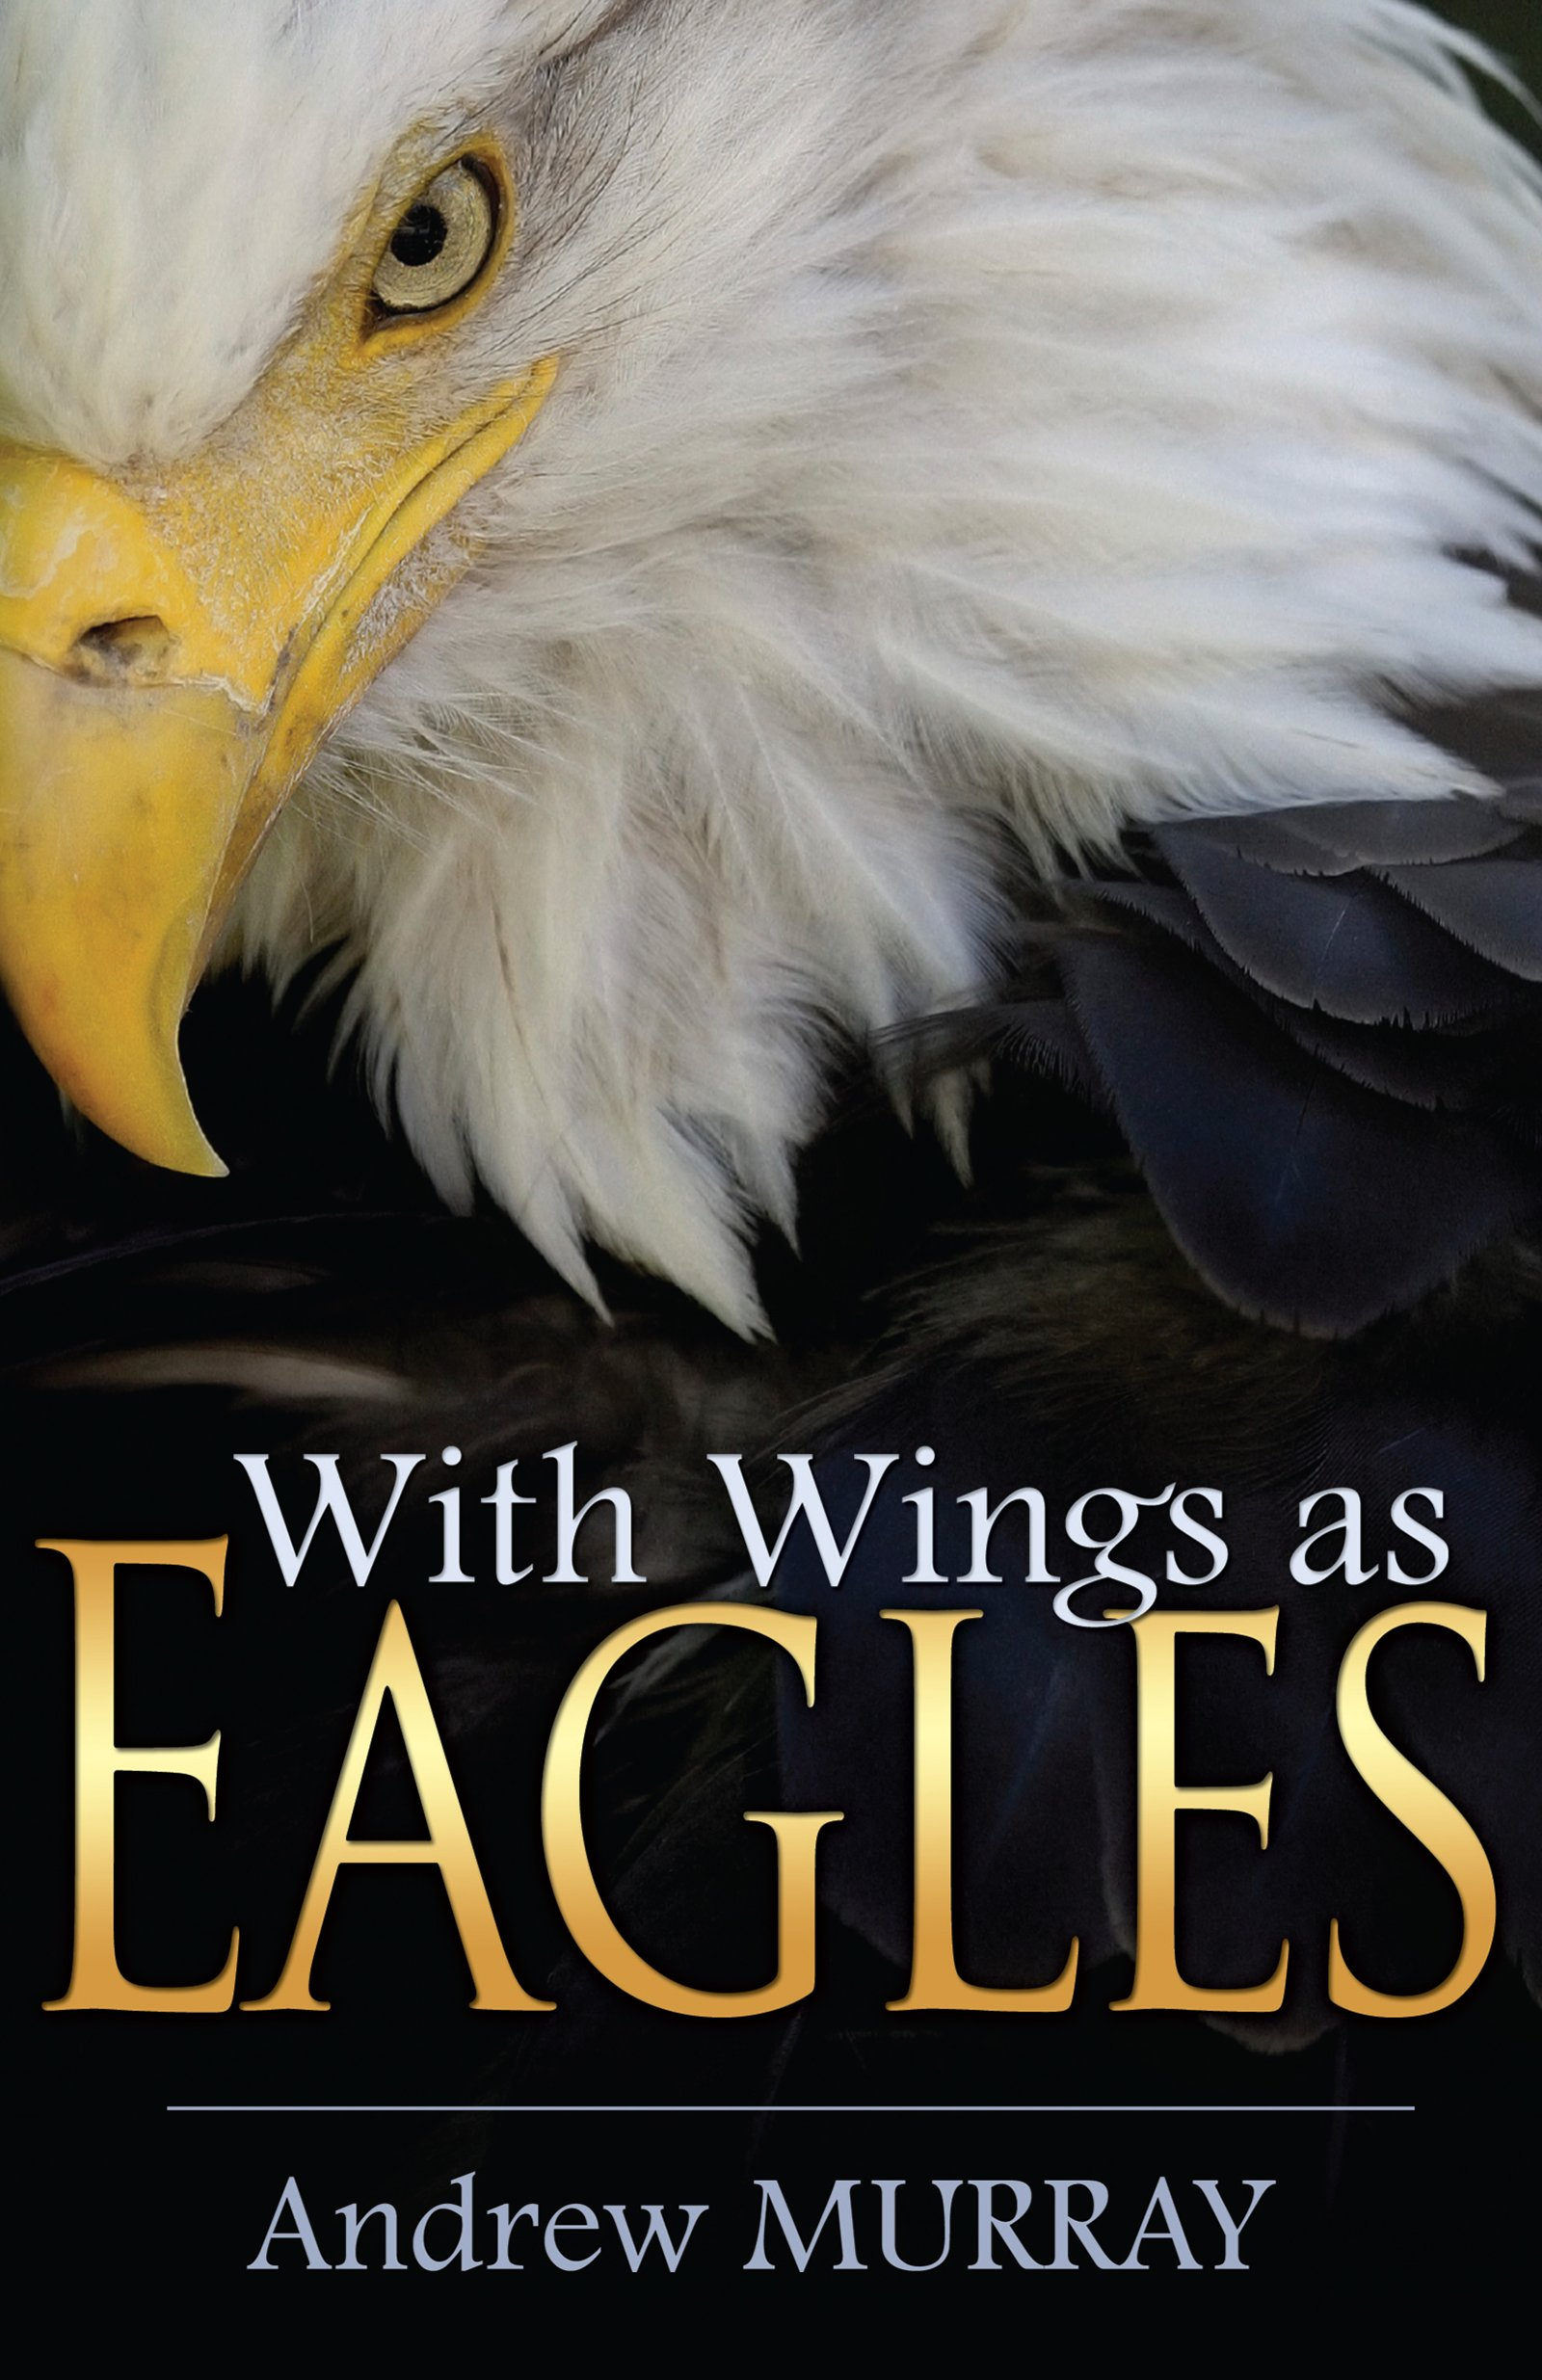 With Wings as Eagles pdf